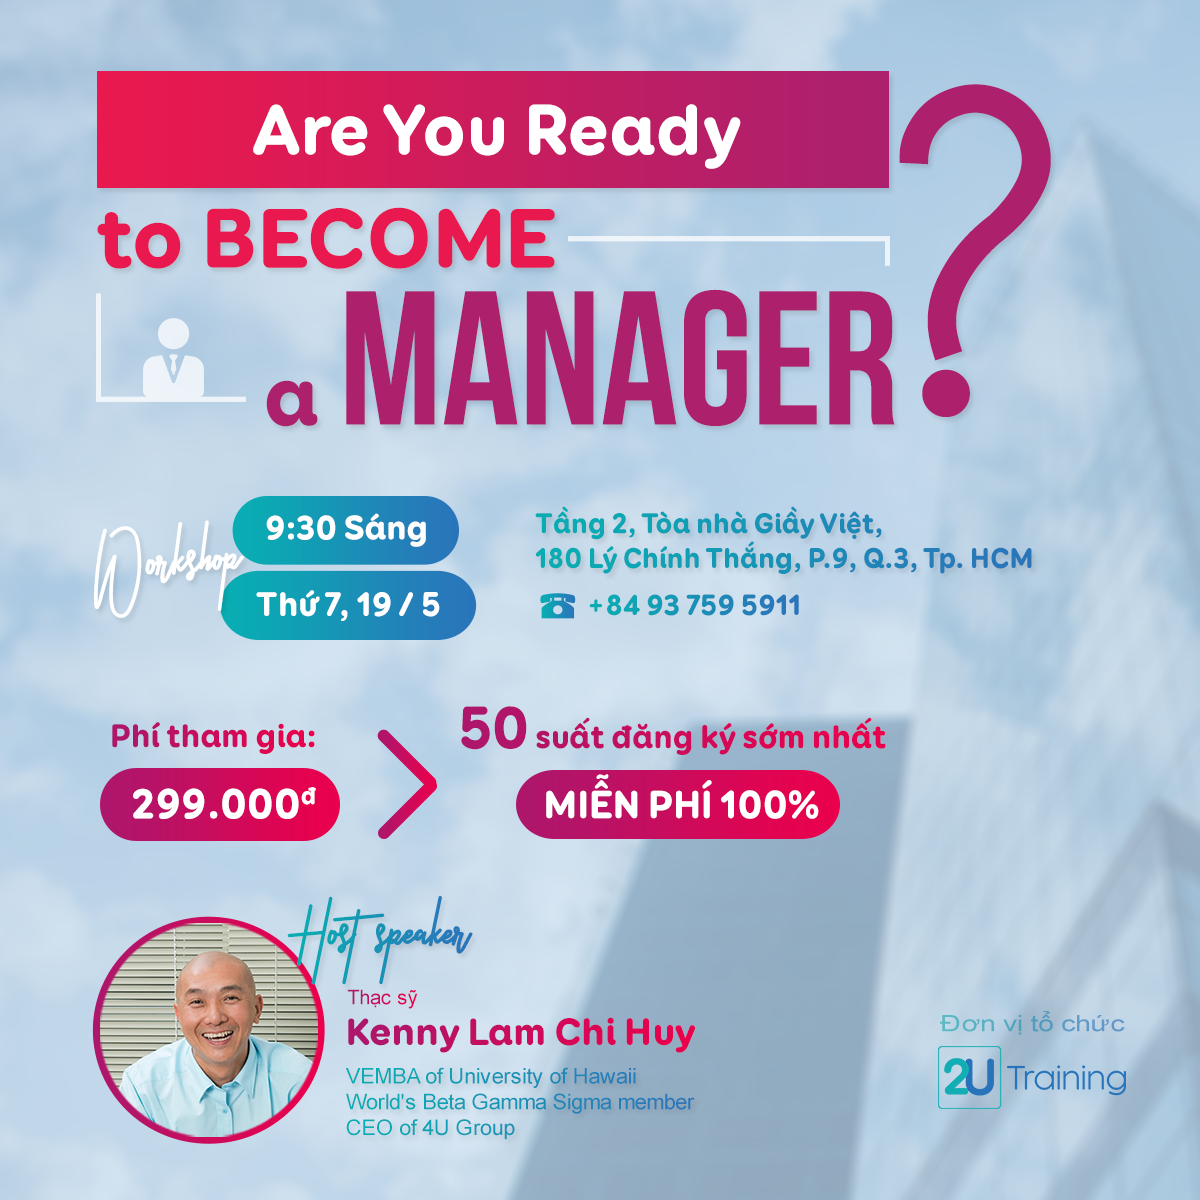 Are You Ready to BECOME a MANAGER?